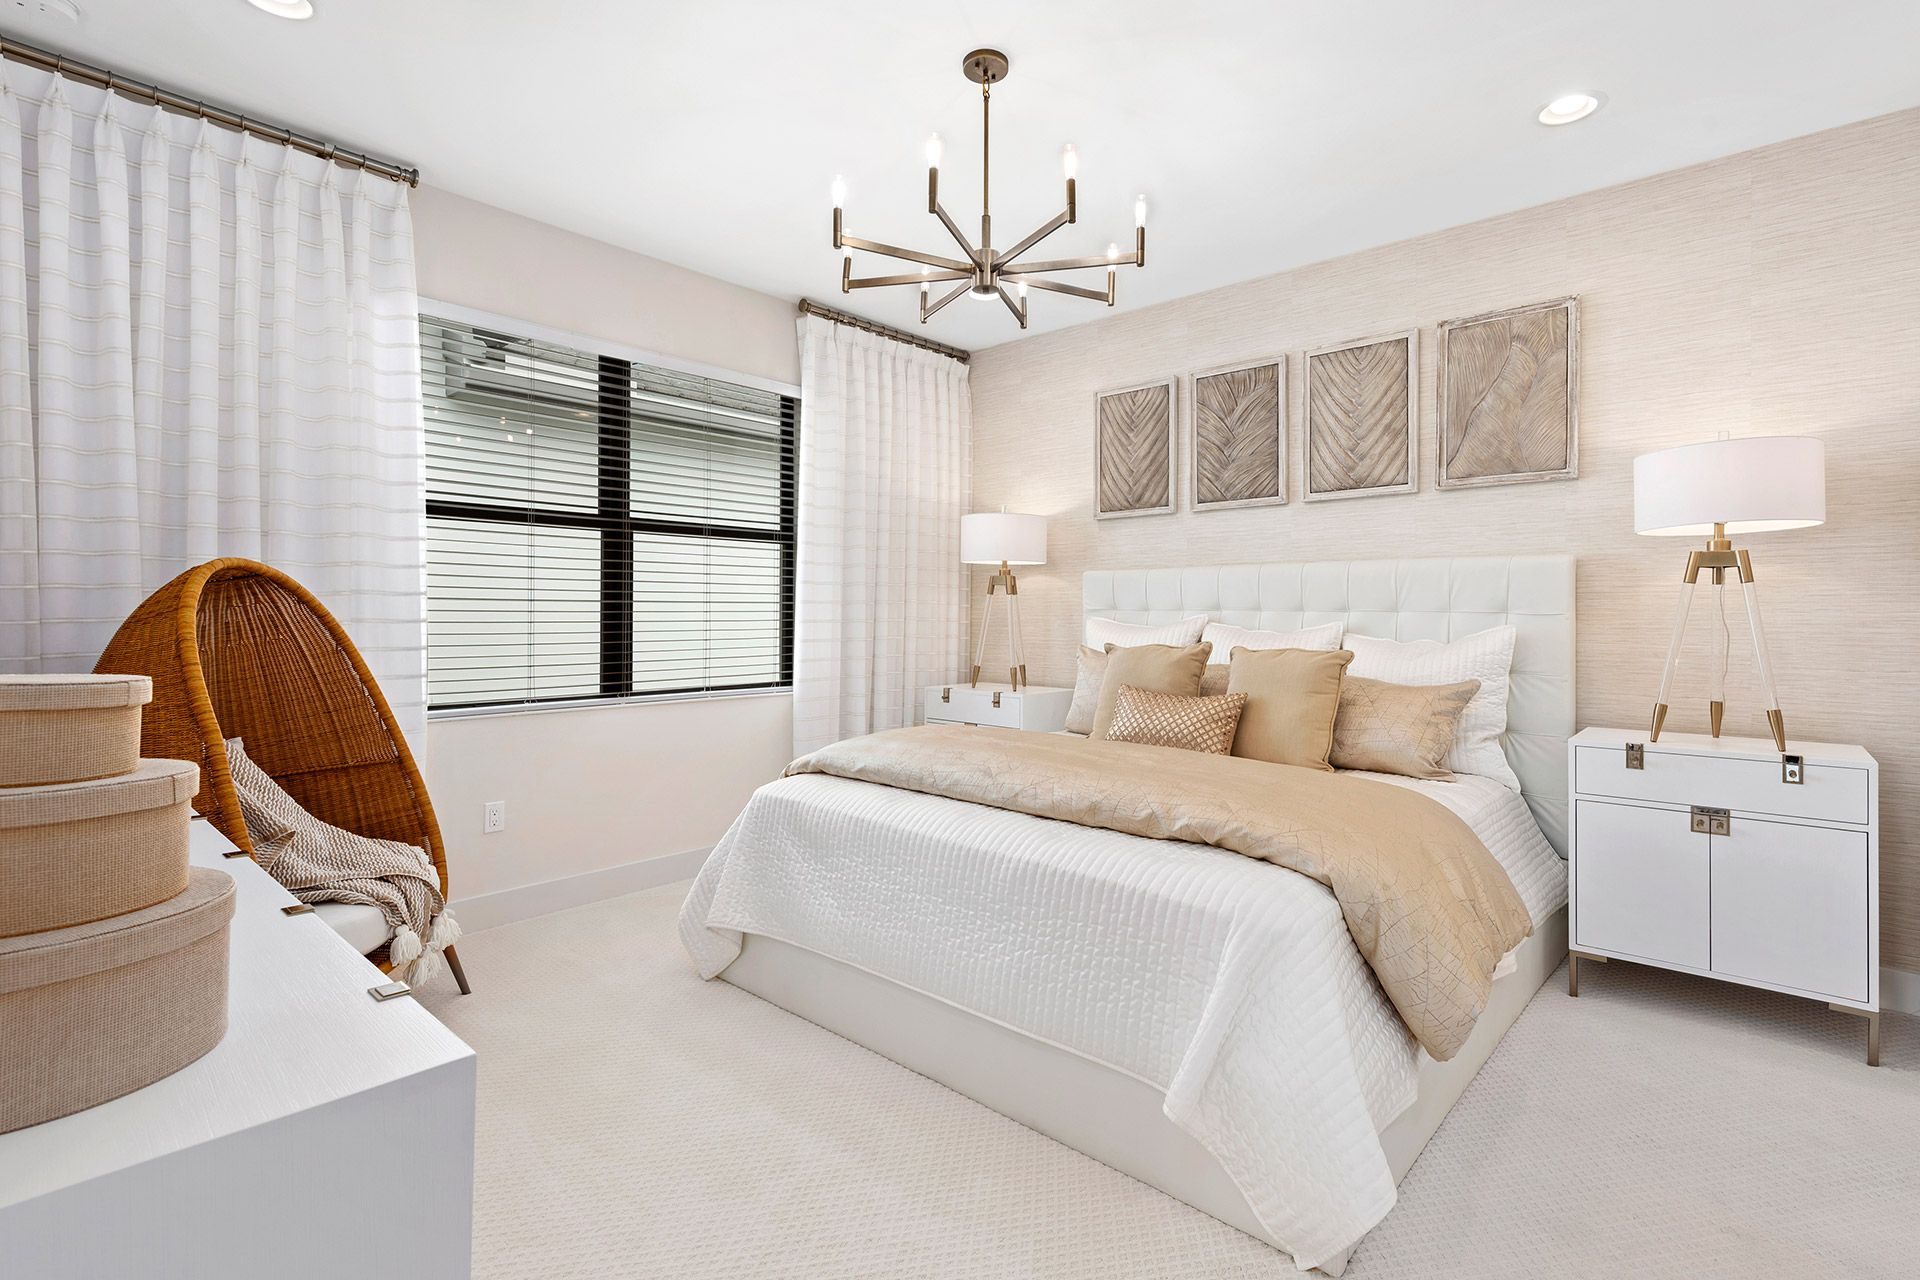 Bedroom featured in the Samoa By GL Homes in Palm Beach County, FL